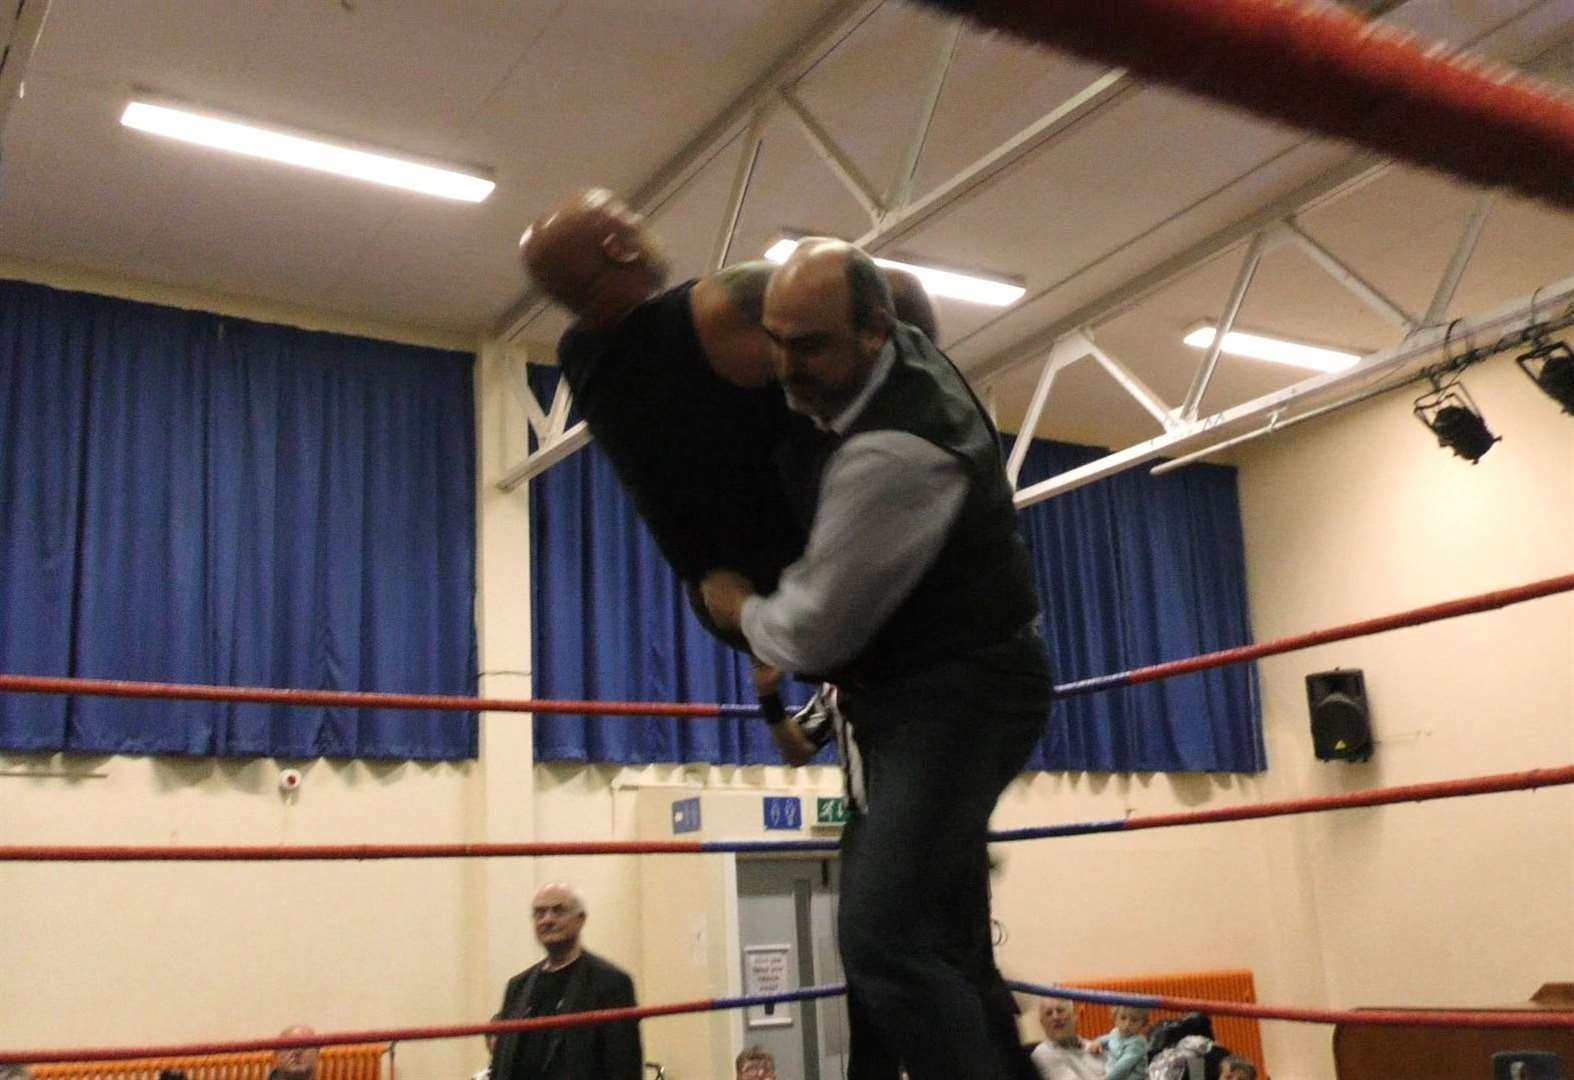 Deputy mayor in chokeslam move